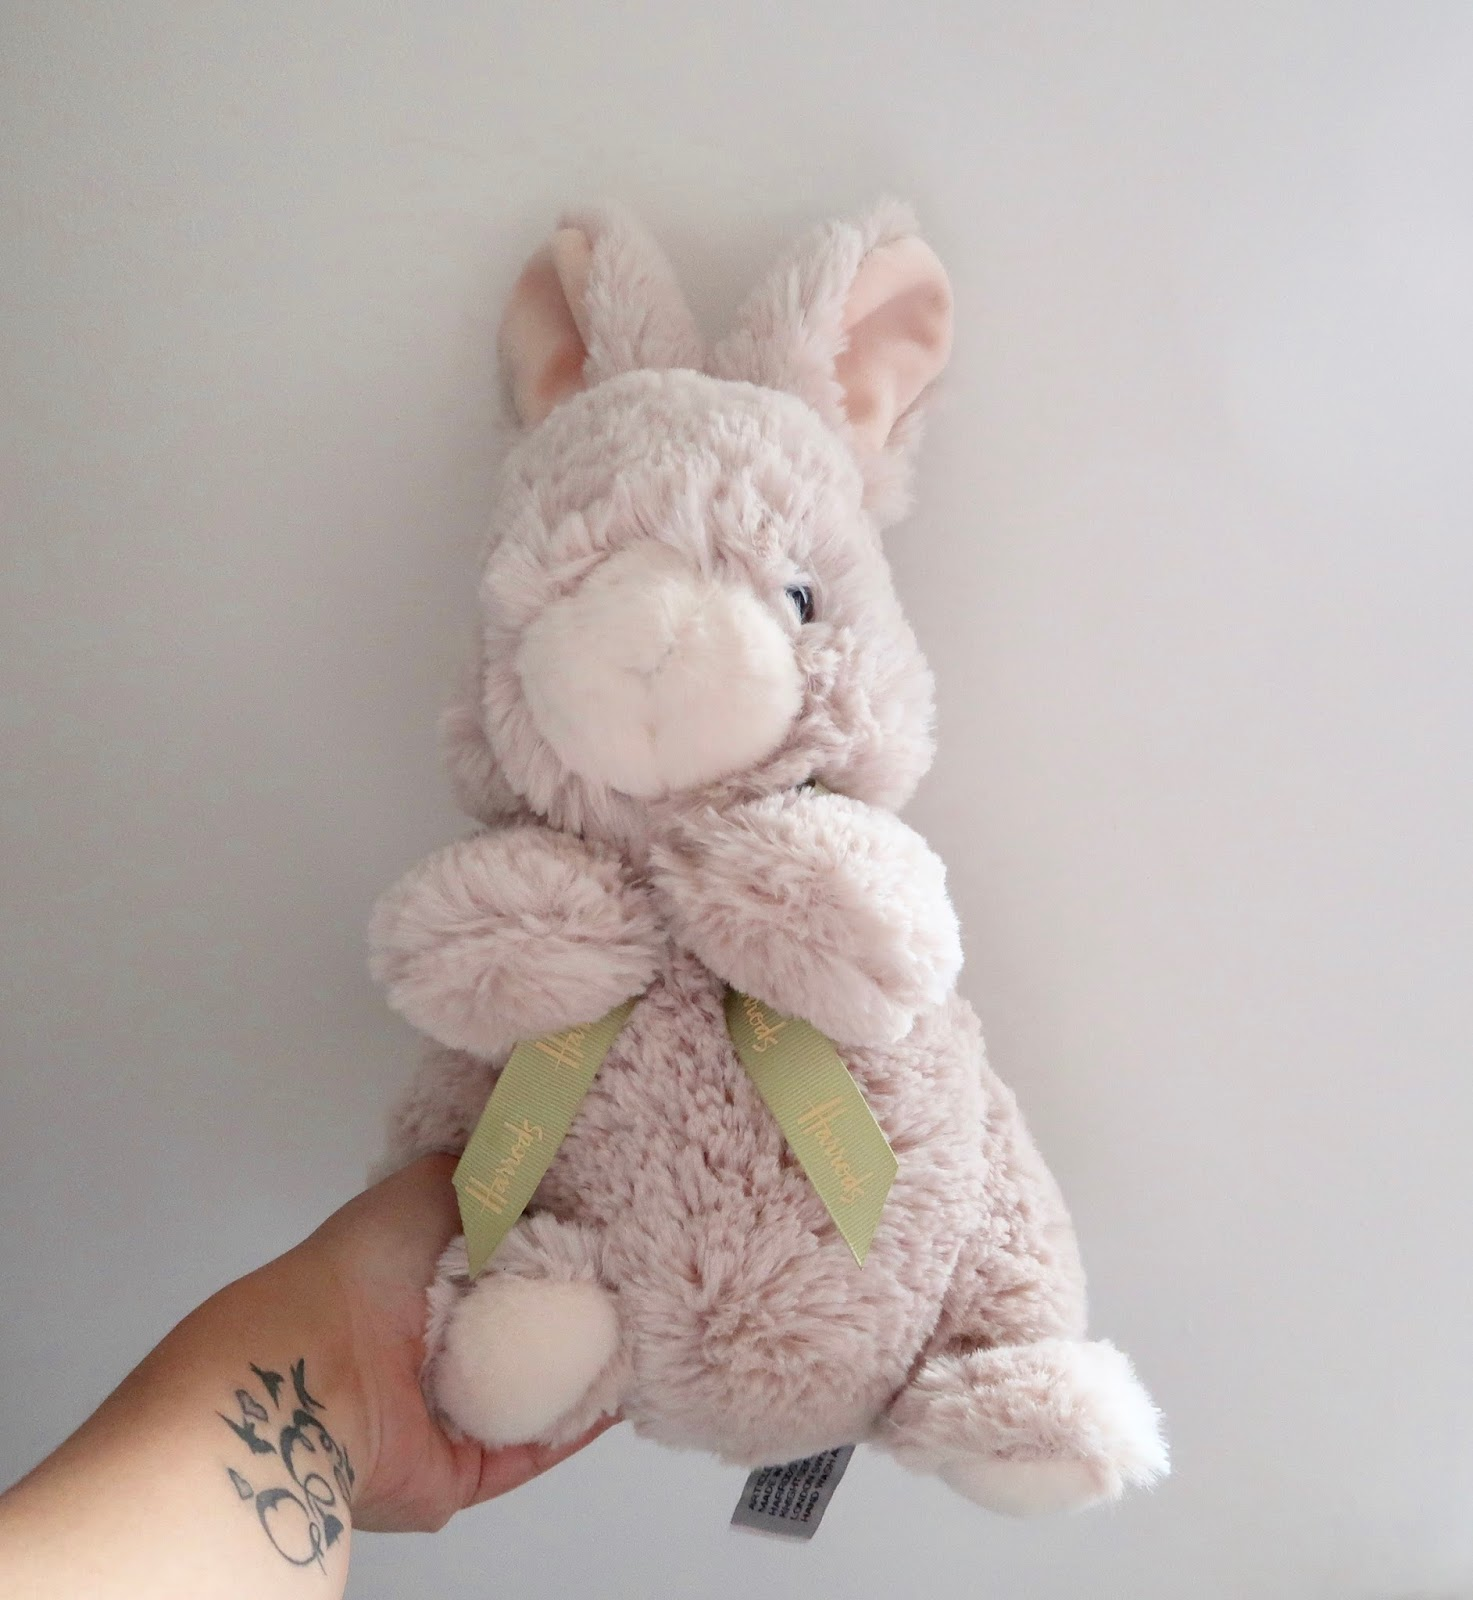 A collectable easter gift from harrods kerry louise norris this year we were kindly sent a harrods easter soft toy for the girls ive decided to give it to ophelia as we actually collect harrods teddy bears and negle Image collections